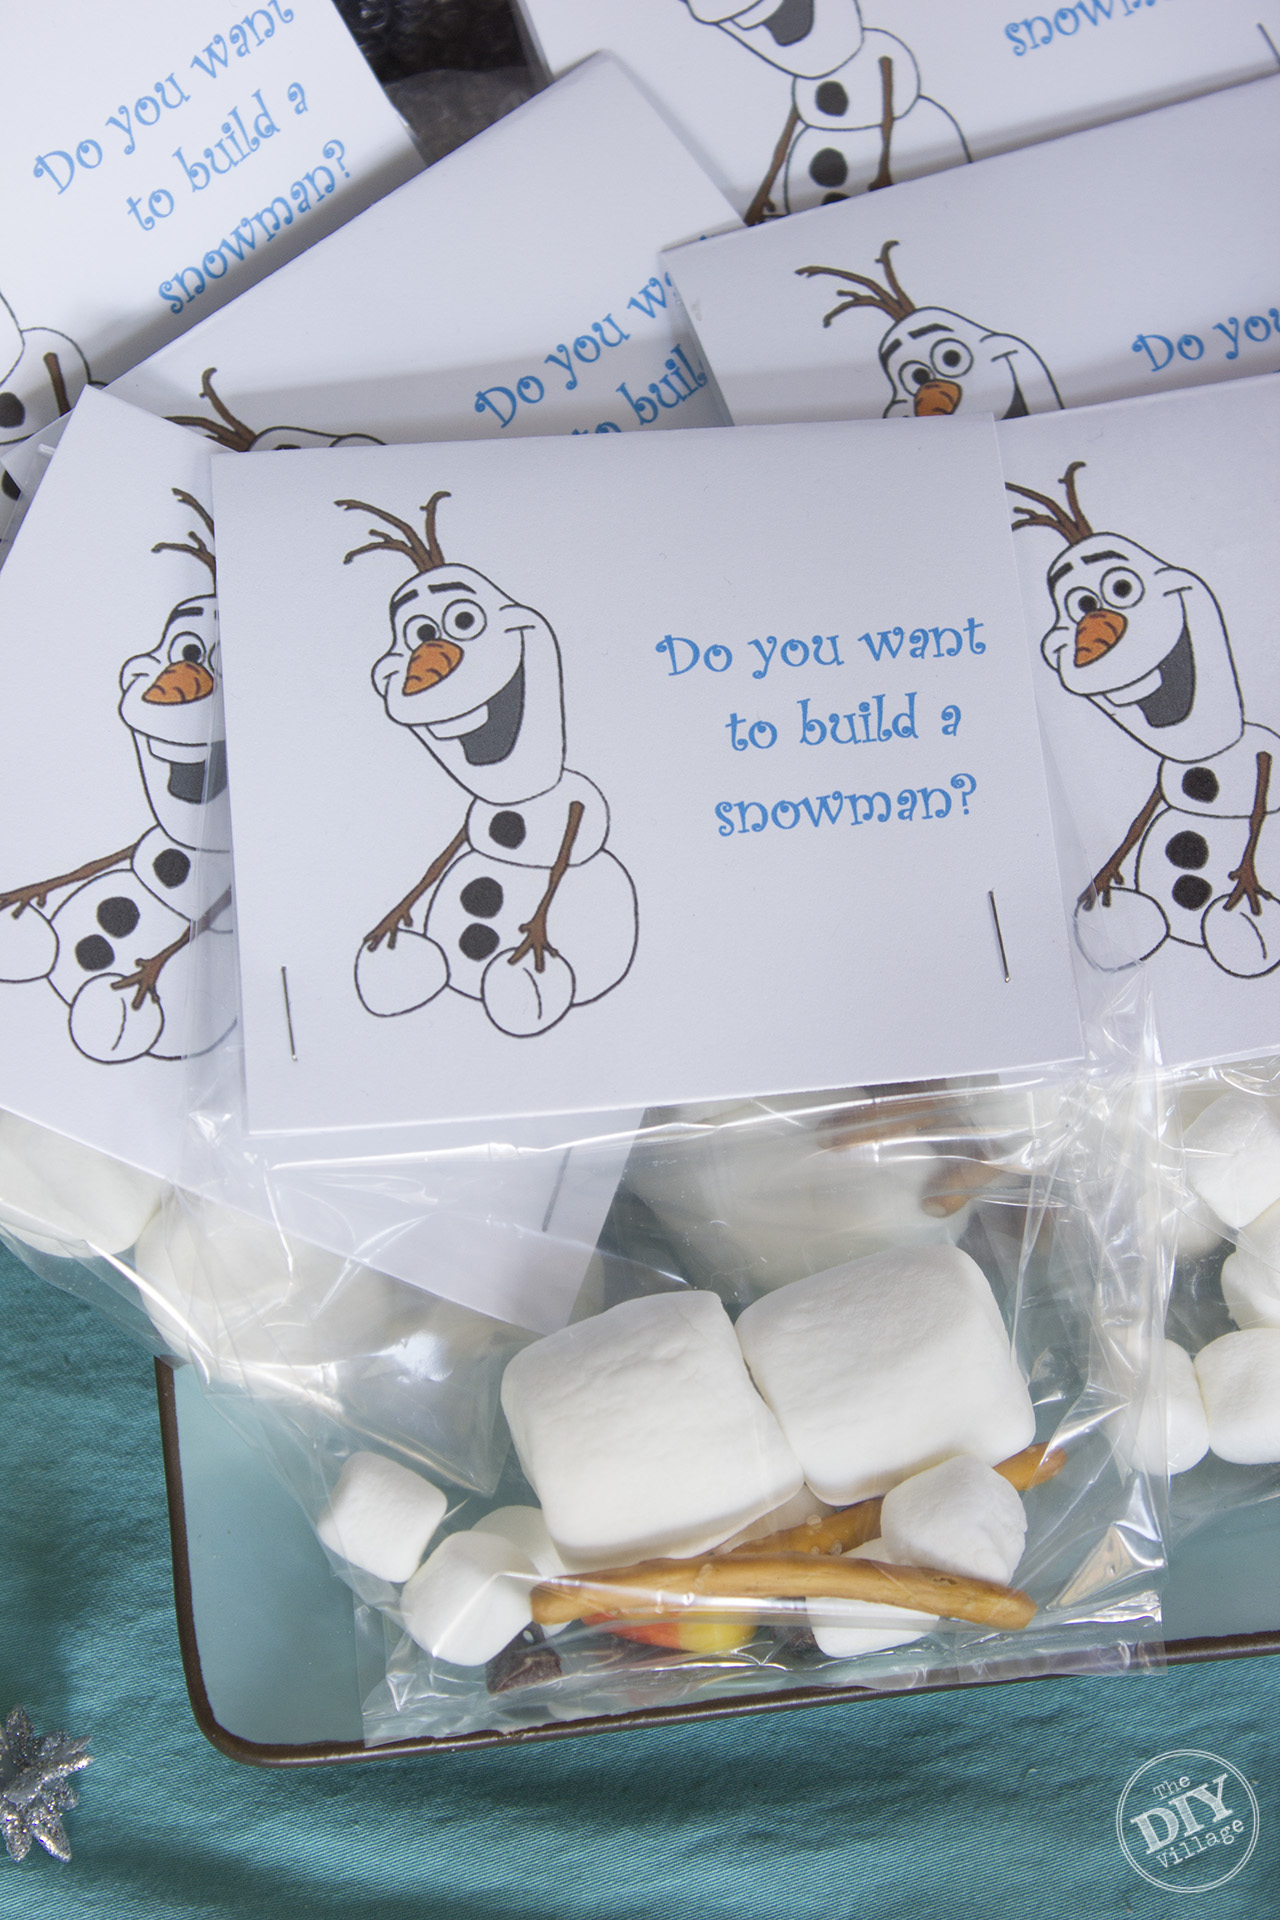 Elsa themed (Frozen) party ideas for the busy mom! So cute.